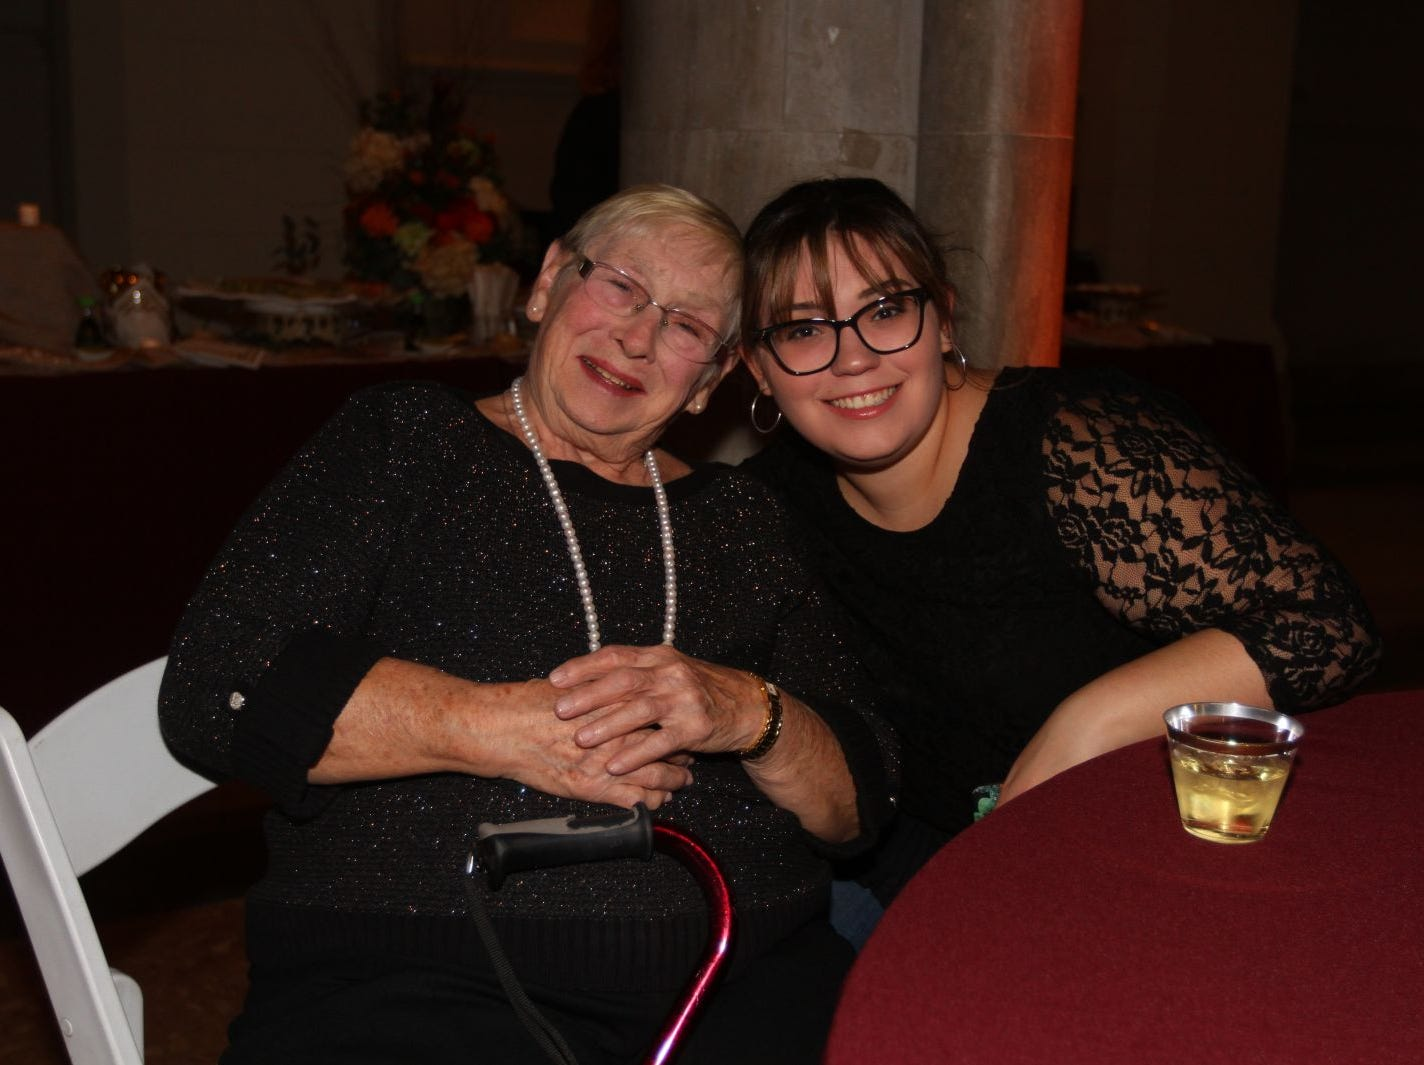 Dolores Clarke; Delanie Munro. Wyckoff Family YMCA hosted its 75th anniversary gala to celebrate its benefactors, held at the Rio Vista seminary in Mahwah. 11/16/2018